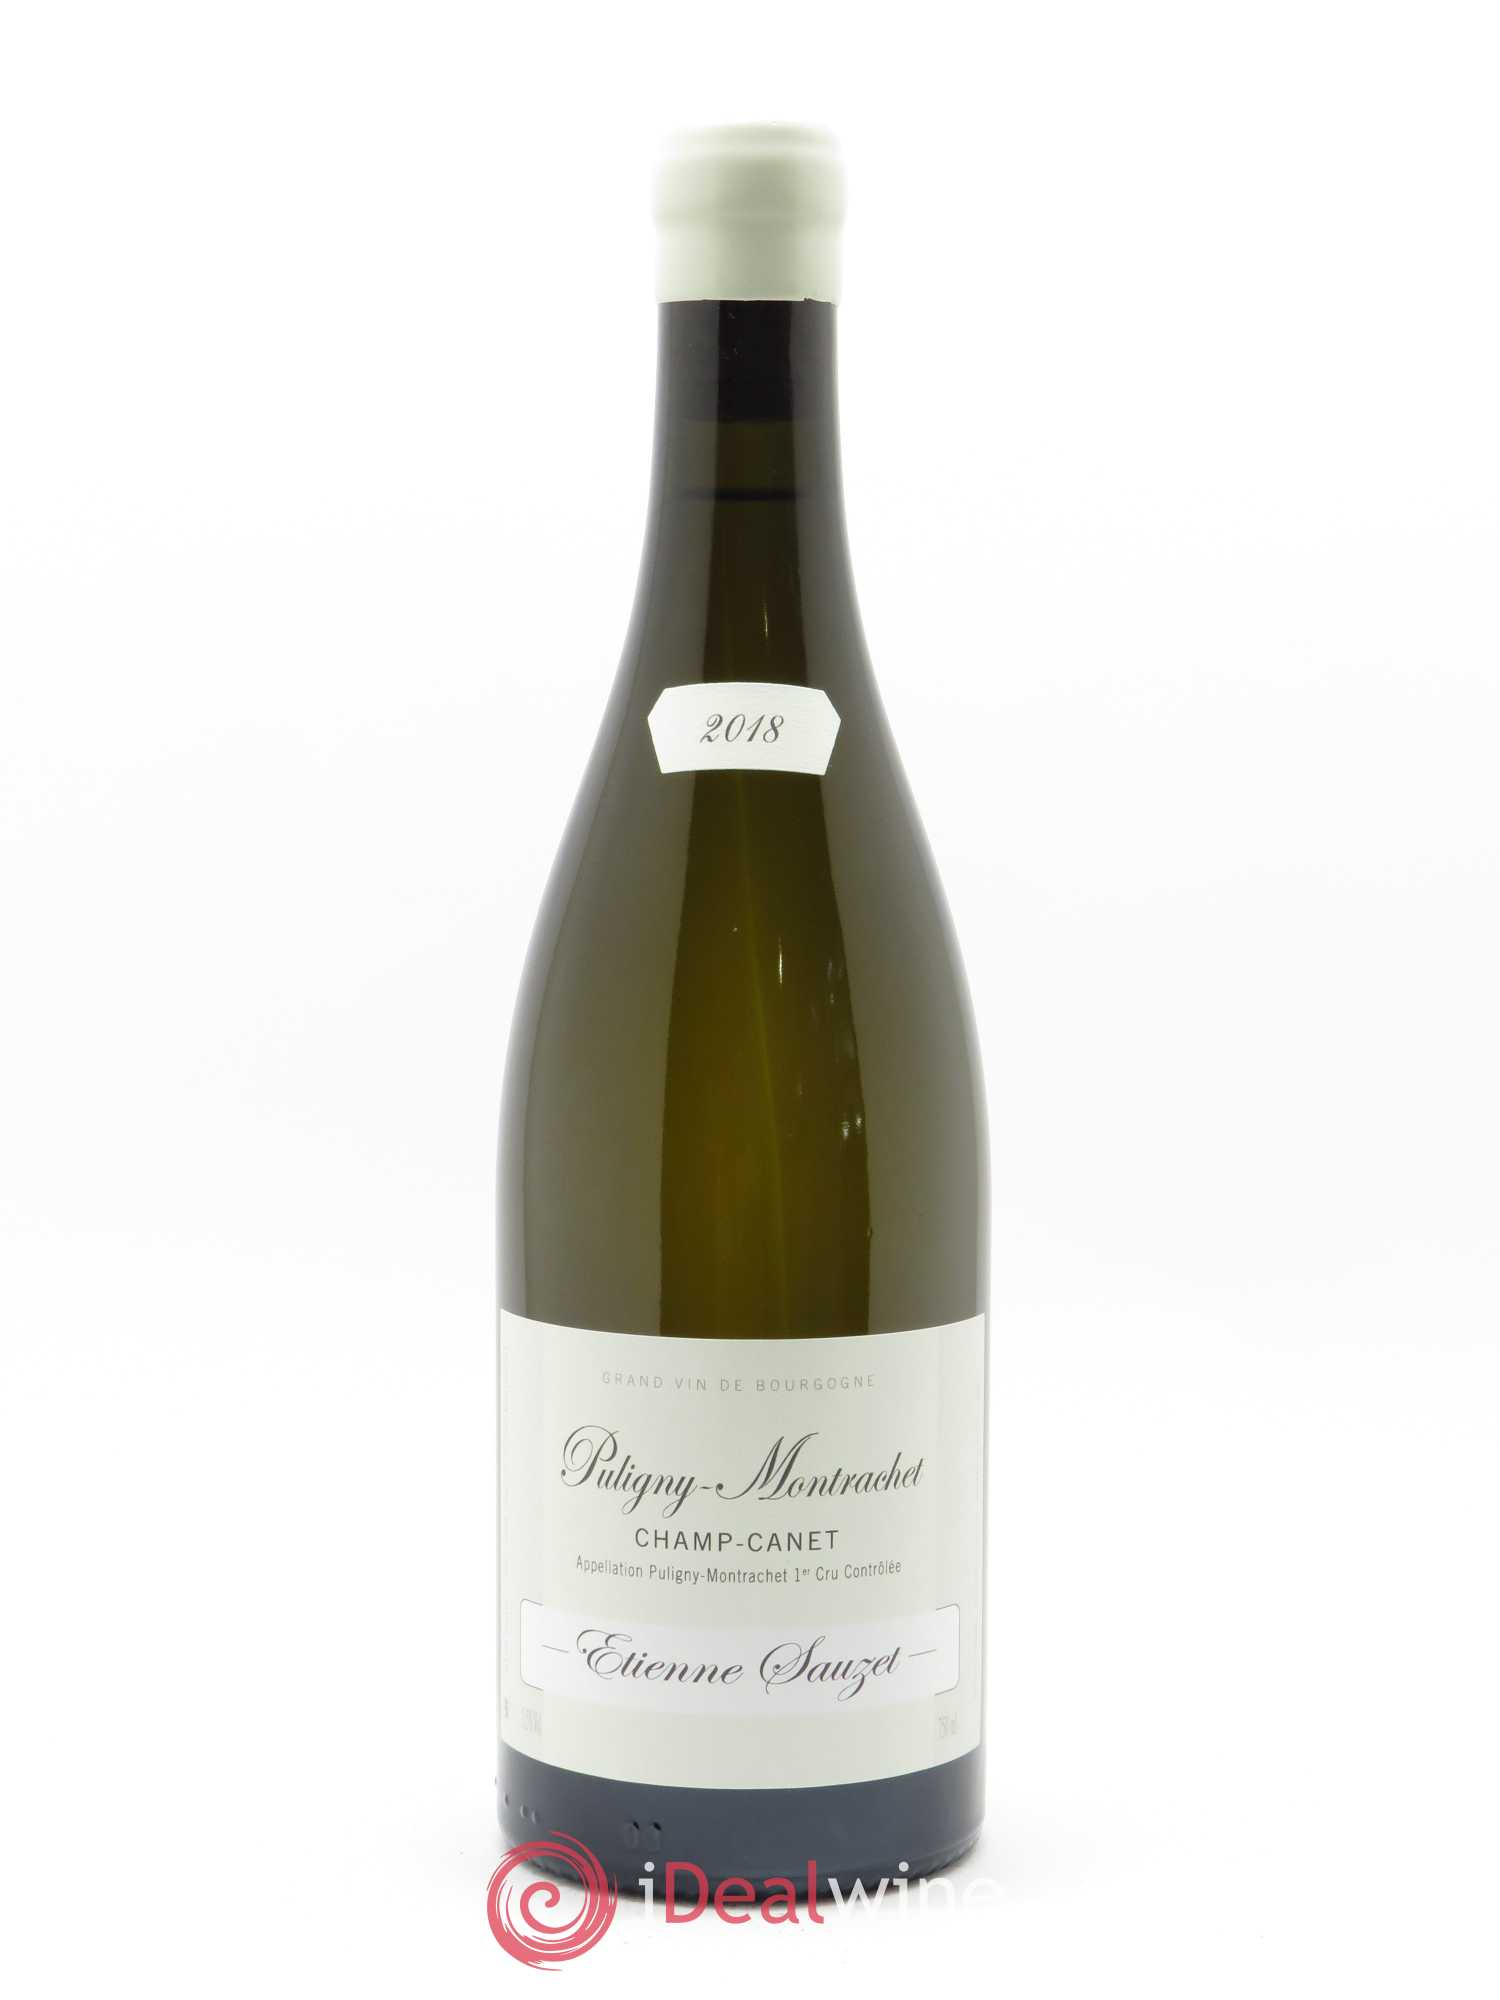 Puligny-Montrachet 1er Cru Champ Canet Etienne Sauzet  2018 - Lot of 1 Bottle